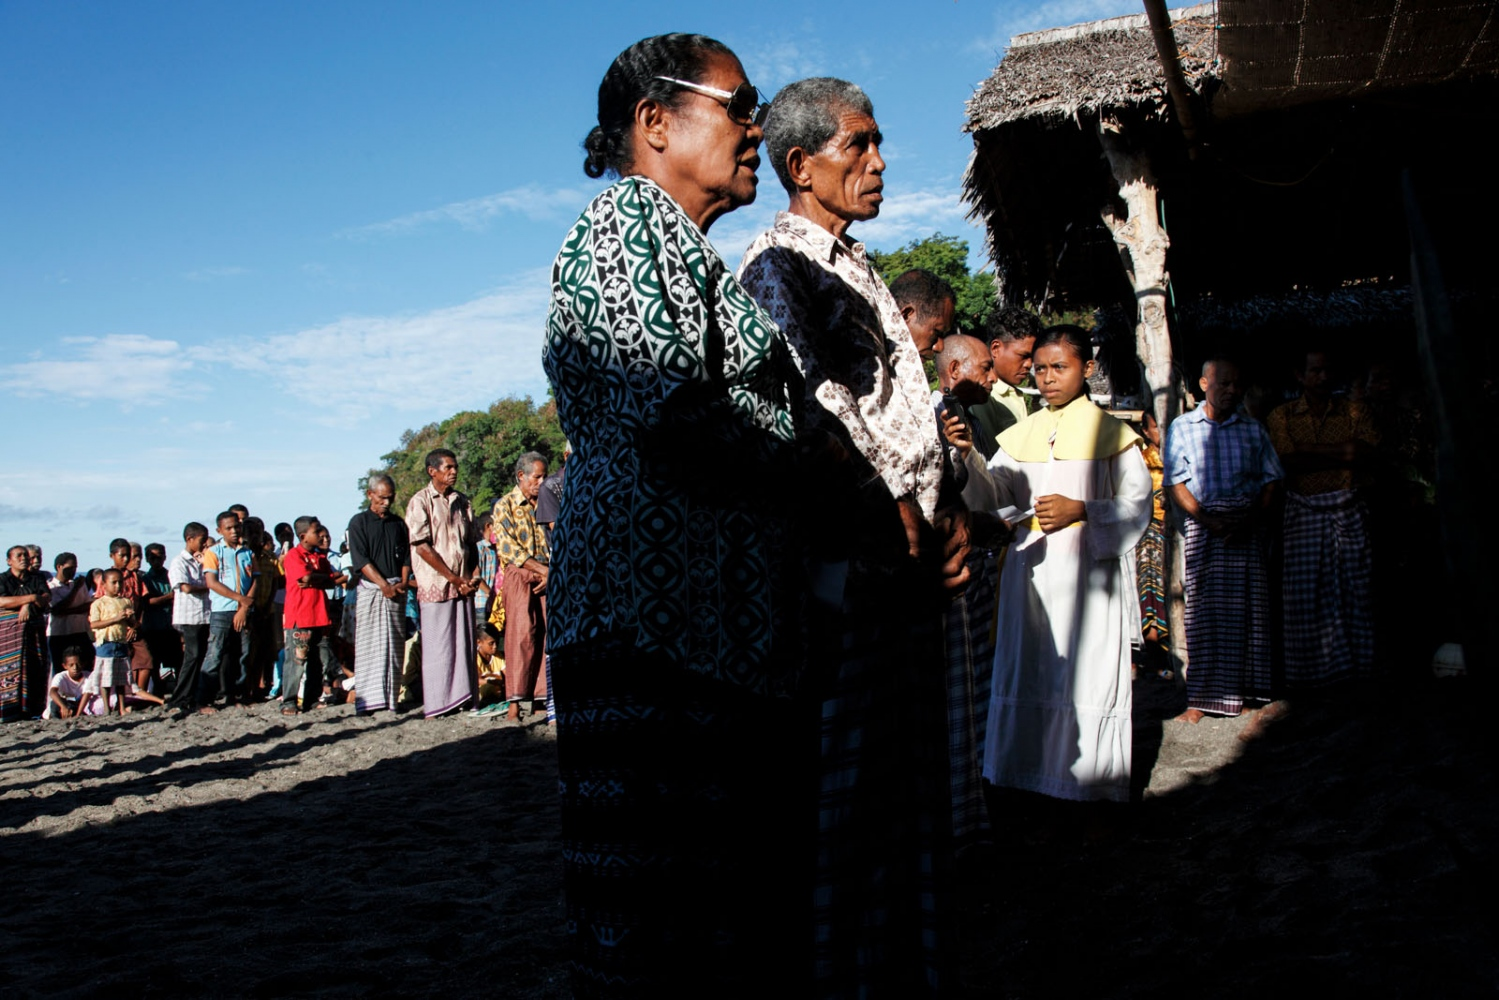 The fishing community of a remote Indonesian Island perform theceremony of'Misa Lefa'. A ceremony held once a year to bless the sea, the fishing boats and bring luck to the upcoming season. To the fishermen, devoted catholics, this is the most important day of the year.' It is small traditional fishing communities such as this that are effected by over-fishing due to large trawlers. Lembata Island, Indonesia